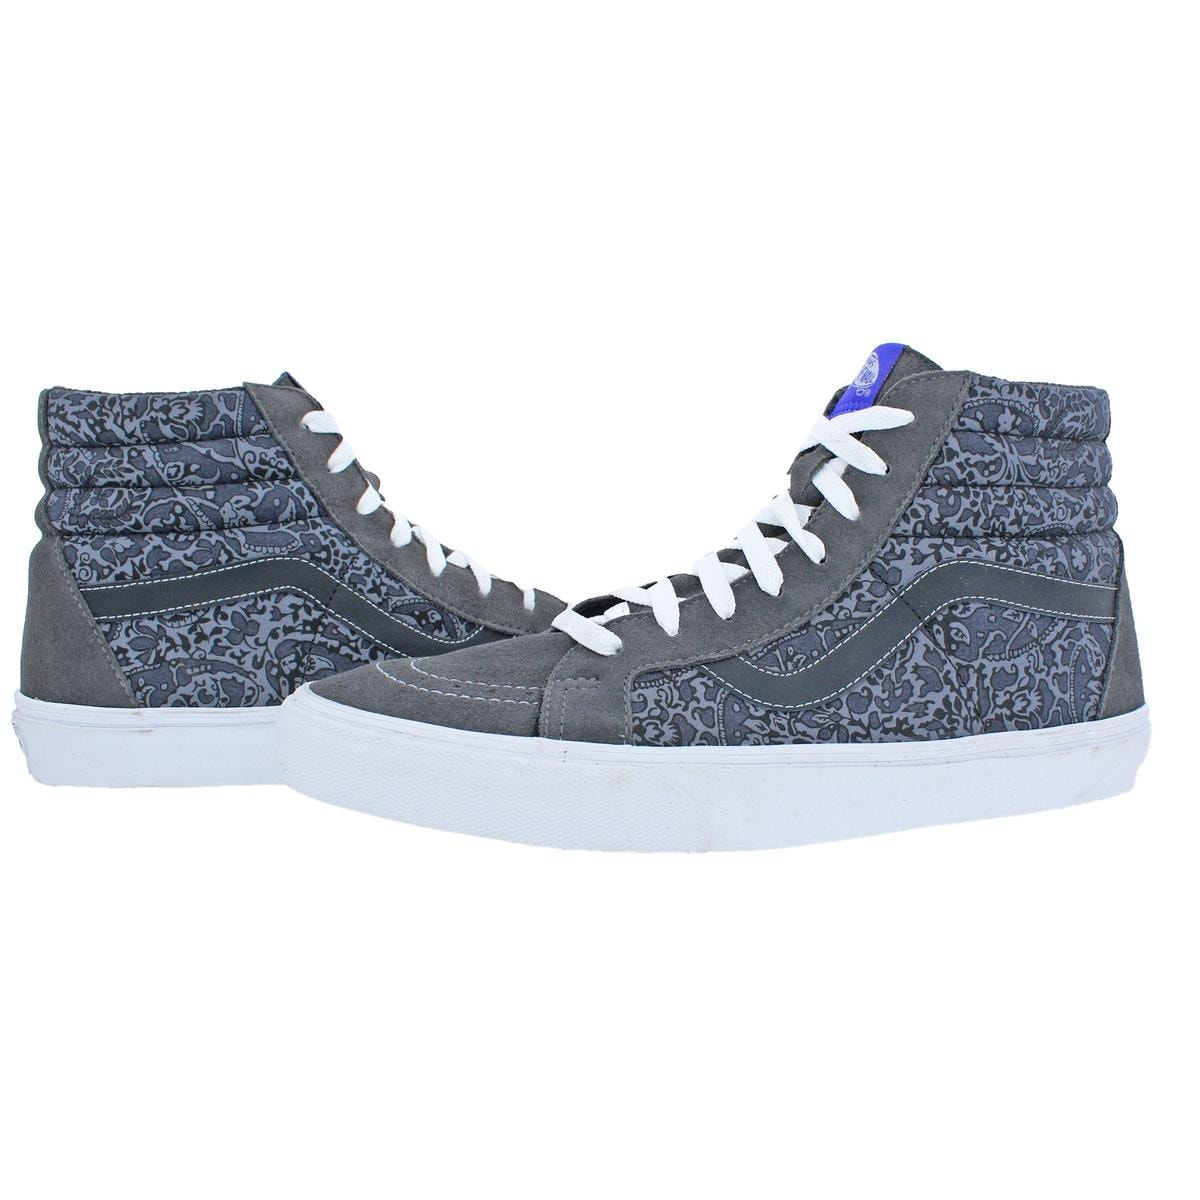 dea2917668 Shop Vans Mens SK8-Hi Reissue High Top Sneakers Skate Liberty - 11 medium  (d) - Free Shipping Today - Overstock - 22670797